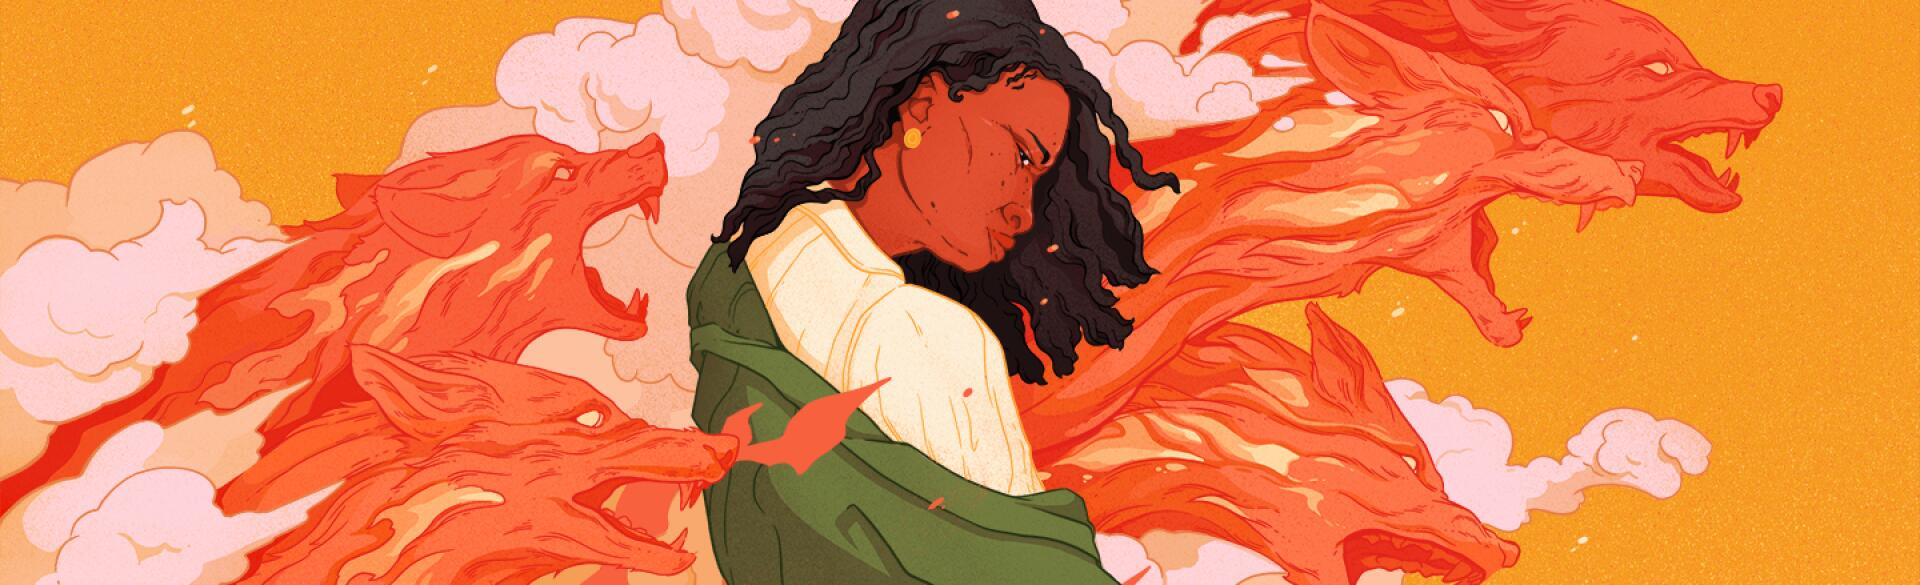 illustration_of_black_woman_surrounded_by_angry_wolves_by_dani_pendergast_1440x584